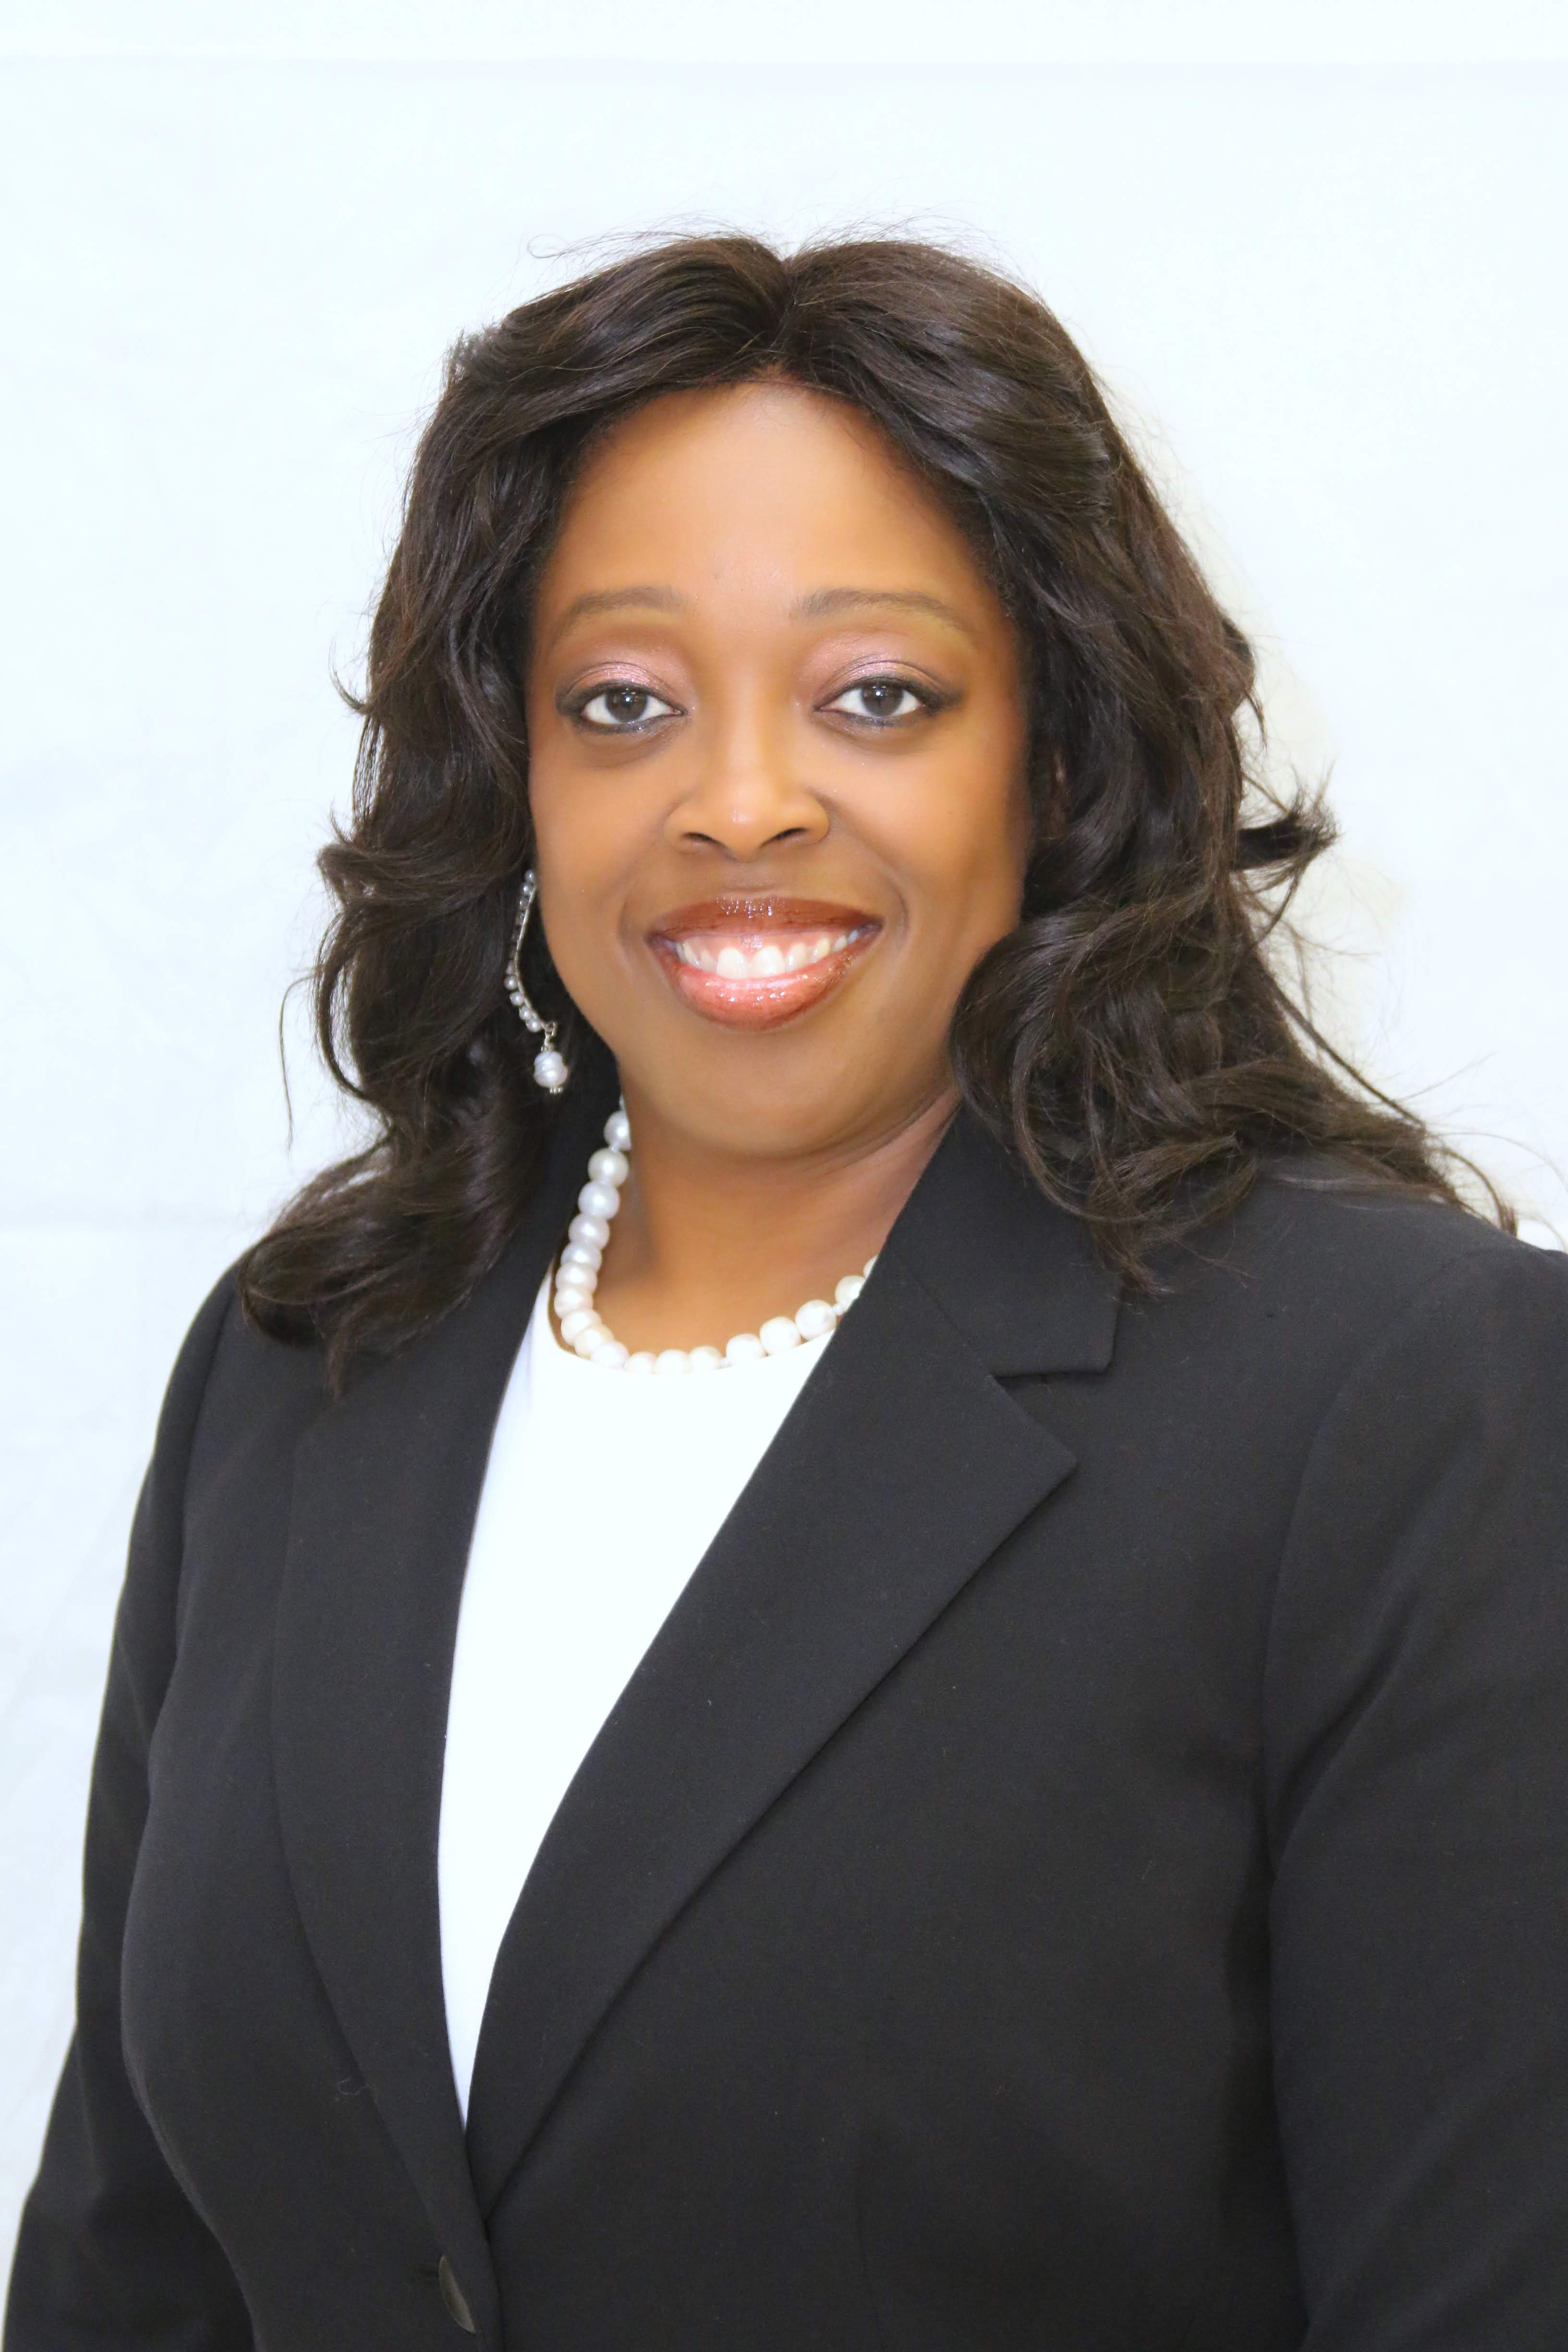 Kimberly R. Smith-Russ, Ph.D, Family and Consumer Science Specialist